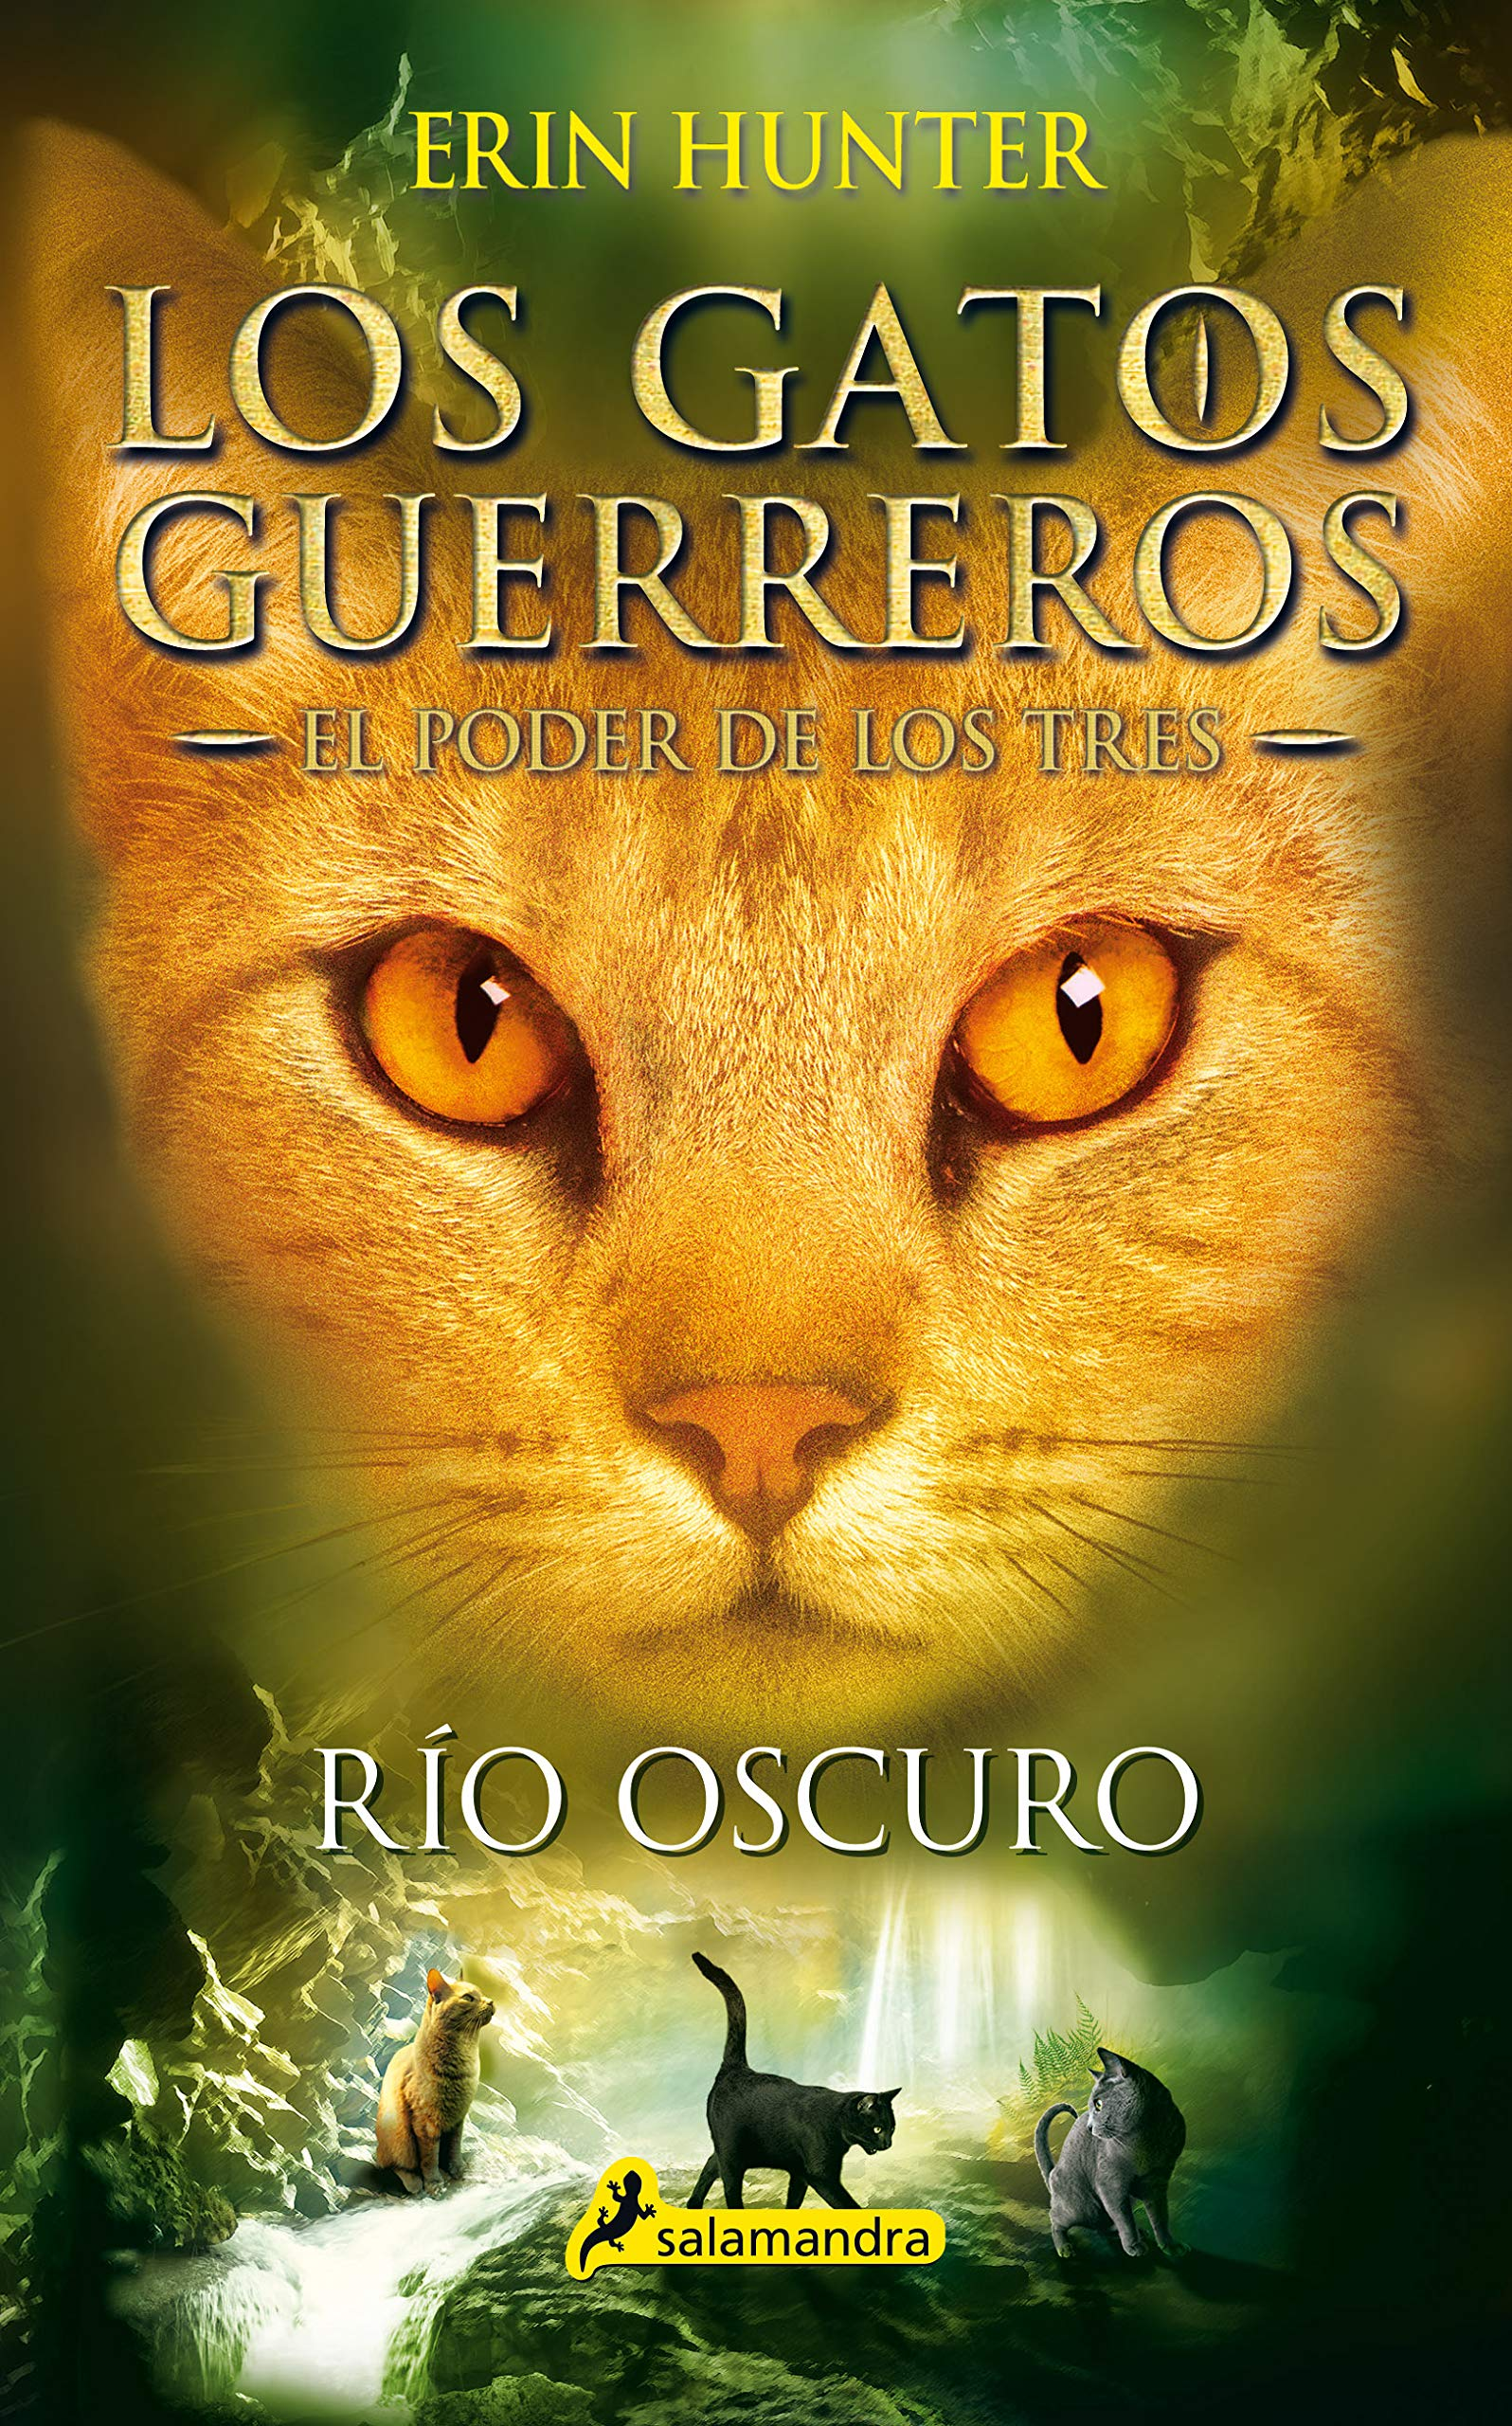 Río Oscuro Dark River Gatos Guerreros Warriors Spanish Edition 9788498388398 Hunter Erin Books